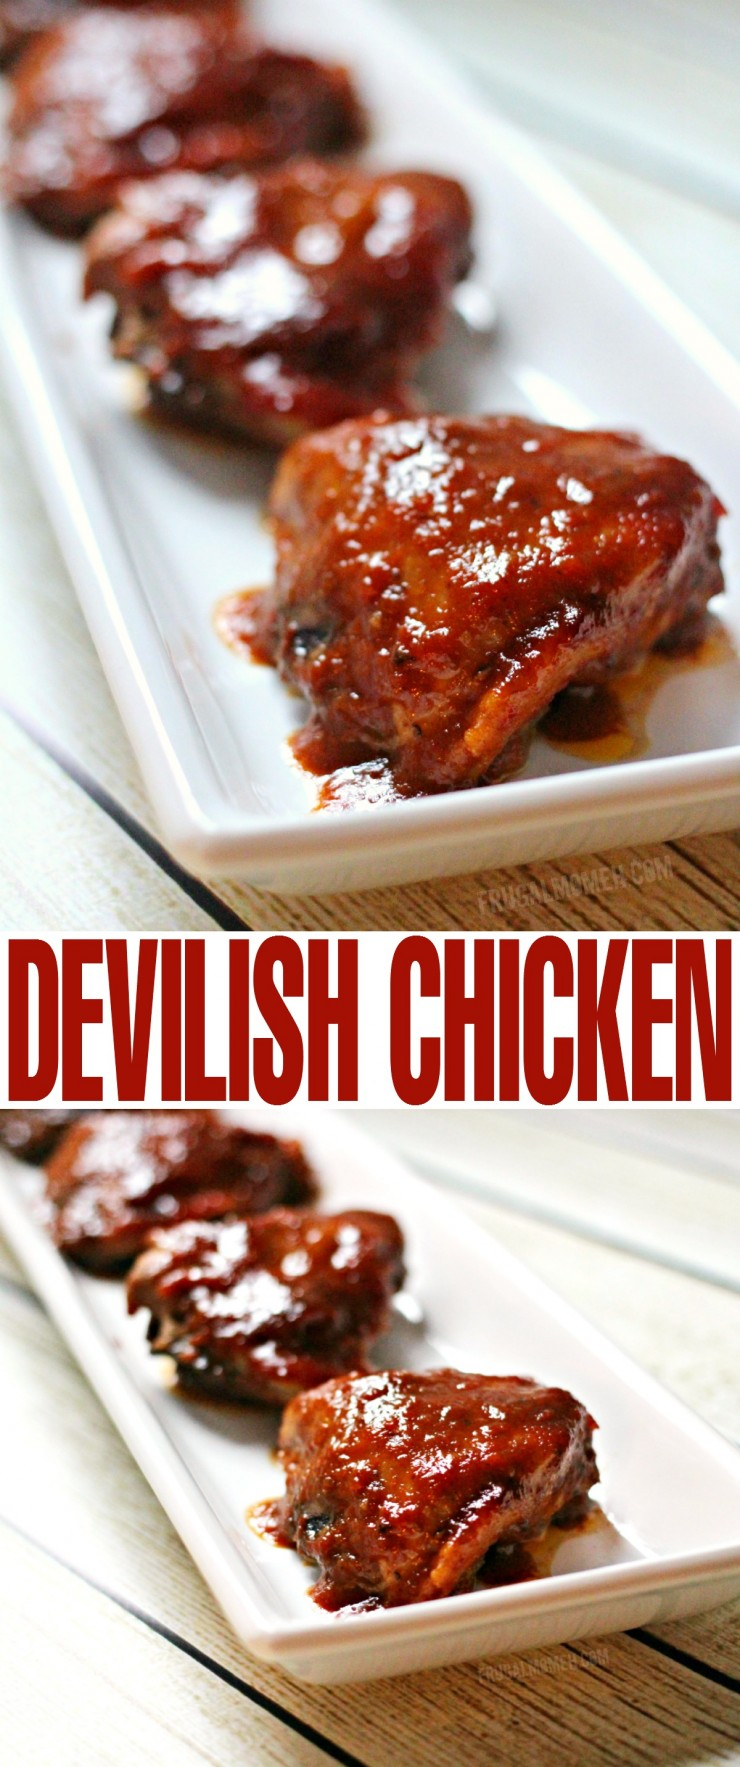 Devilish Chicken is a family favourite recipe. It's quick and easy to throw together and full of flavour. Serve with plain rice and spoon sauce over it.